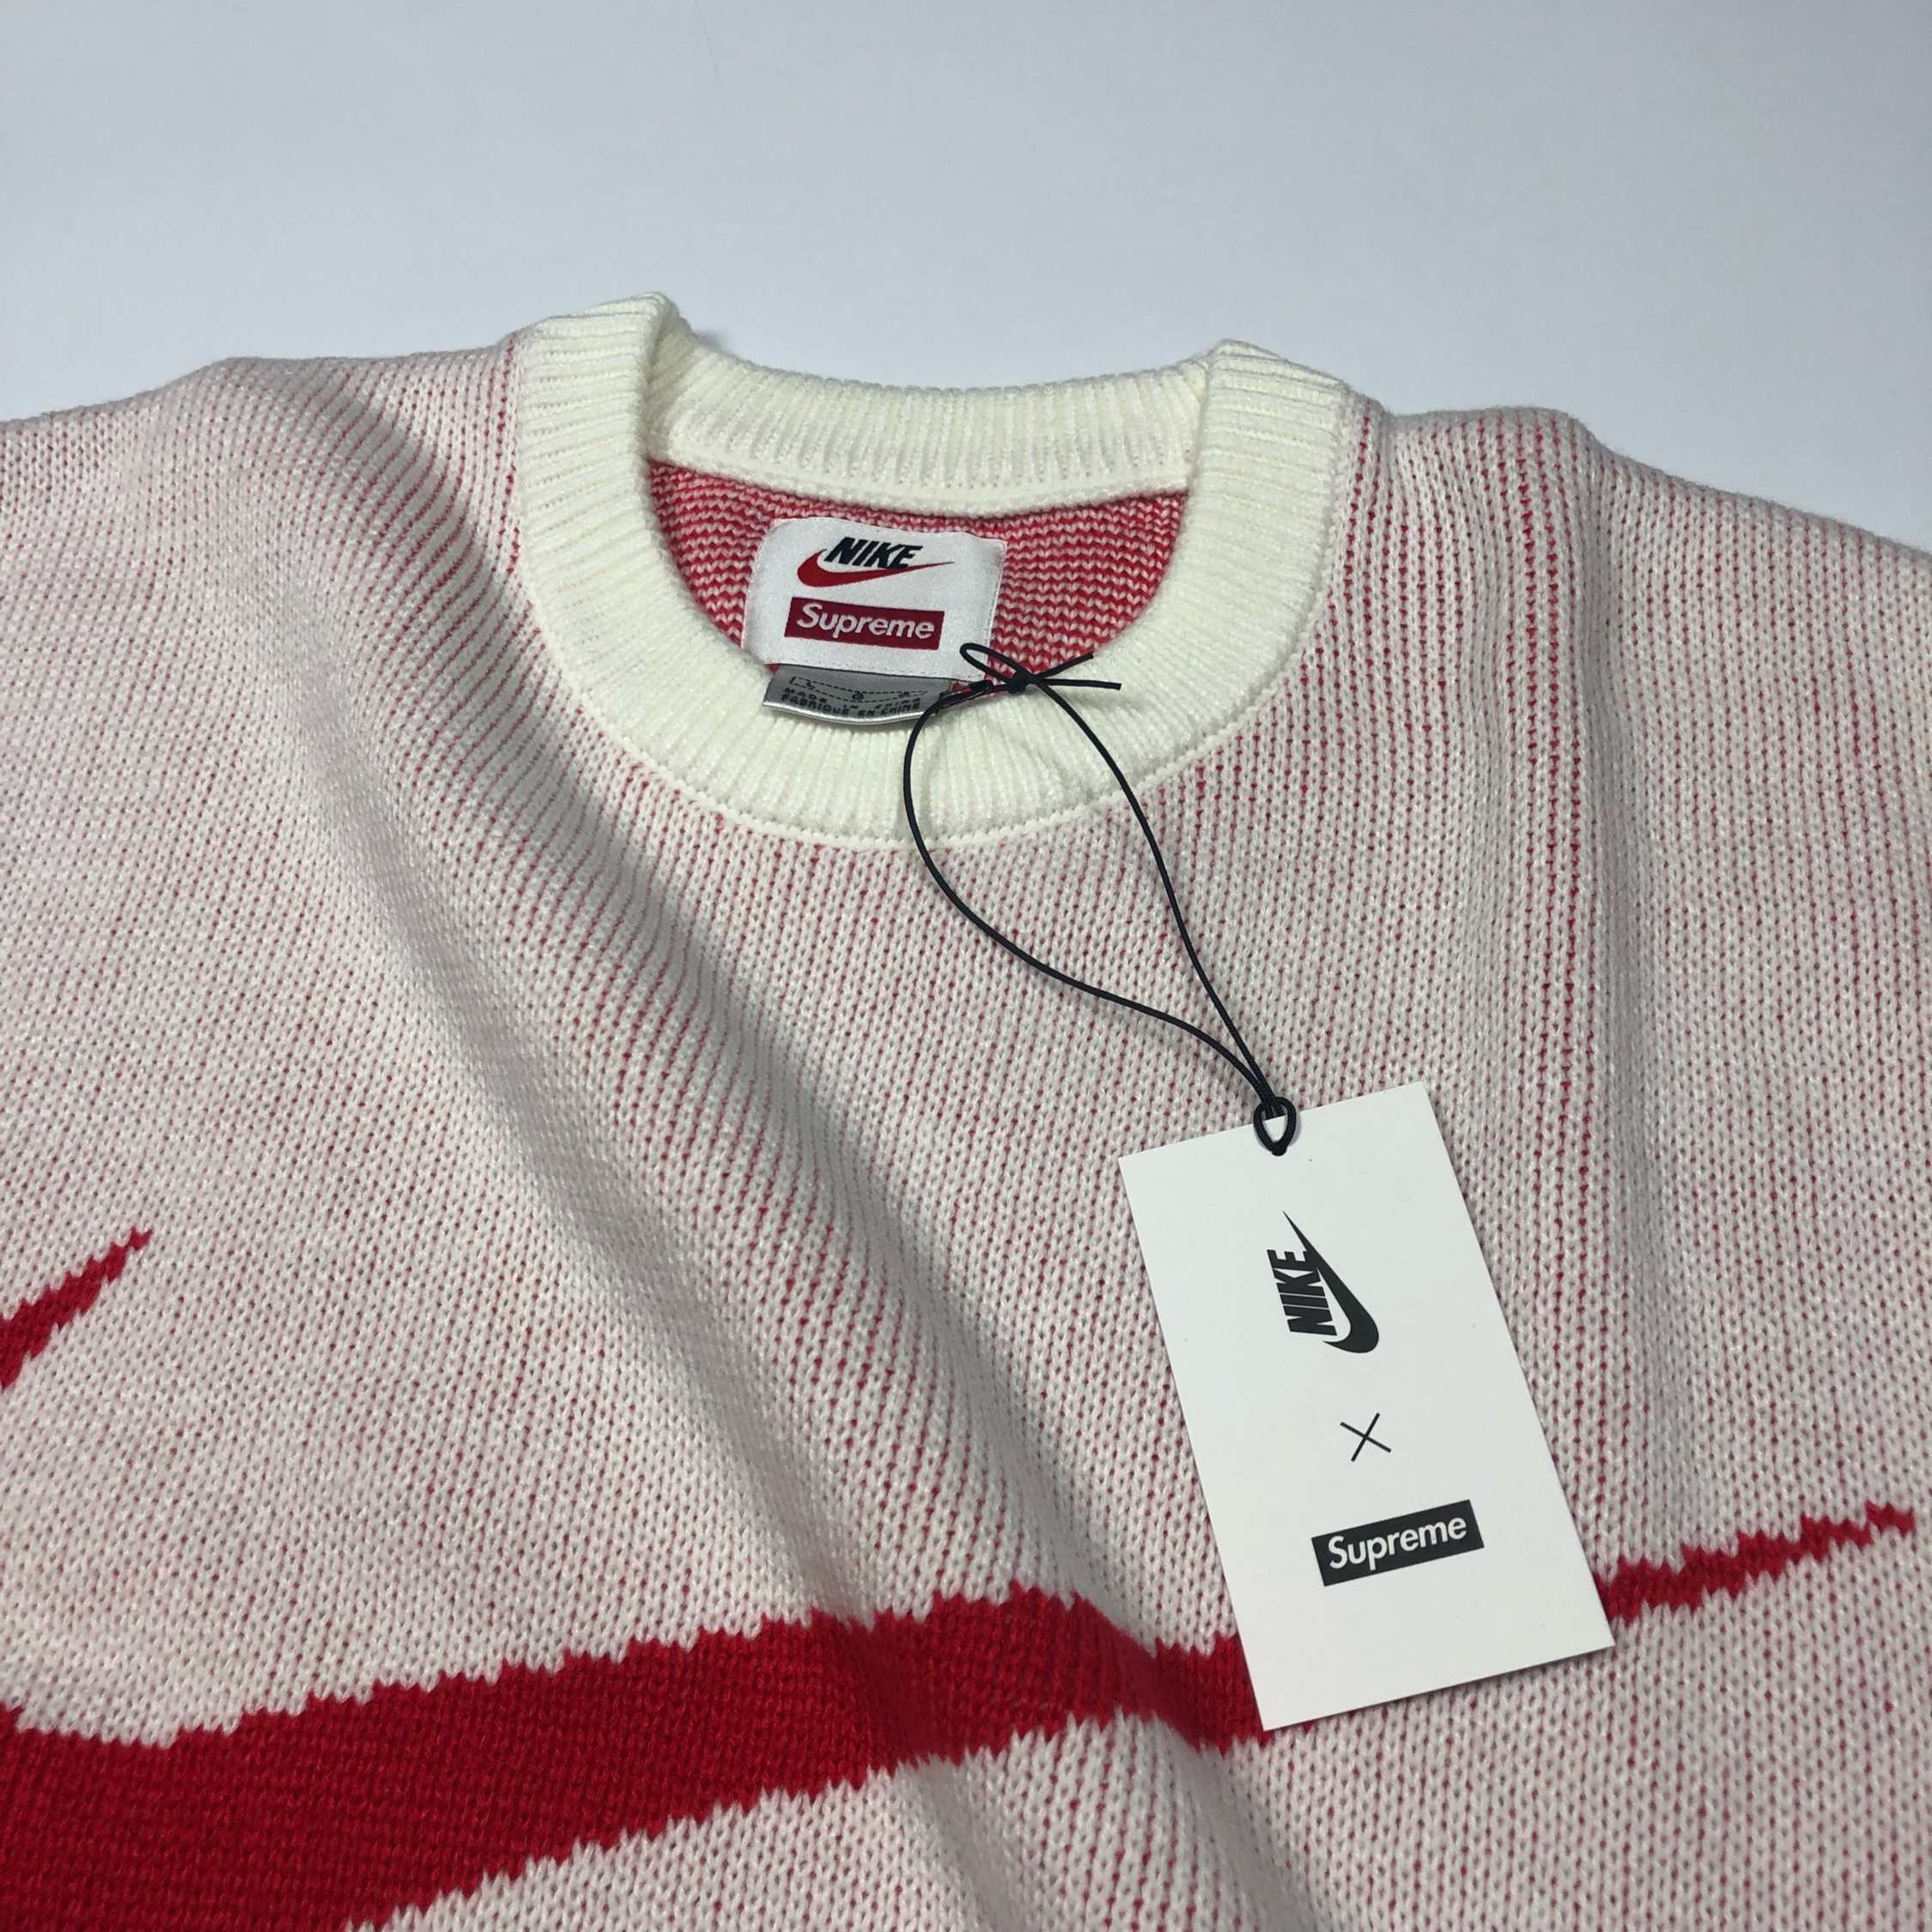 Supreme Nike Swoosh Knitted Sweater New Large